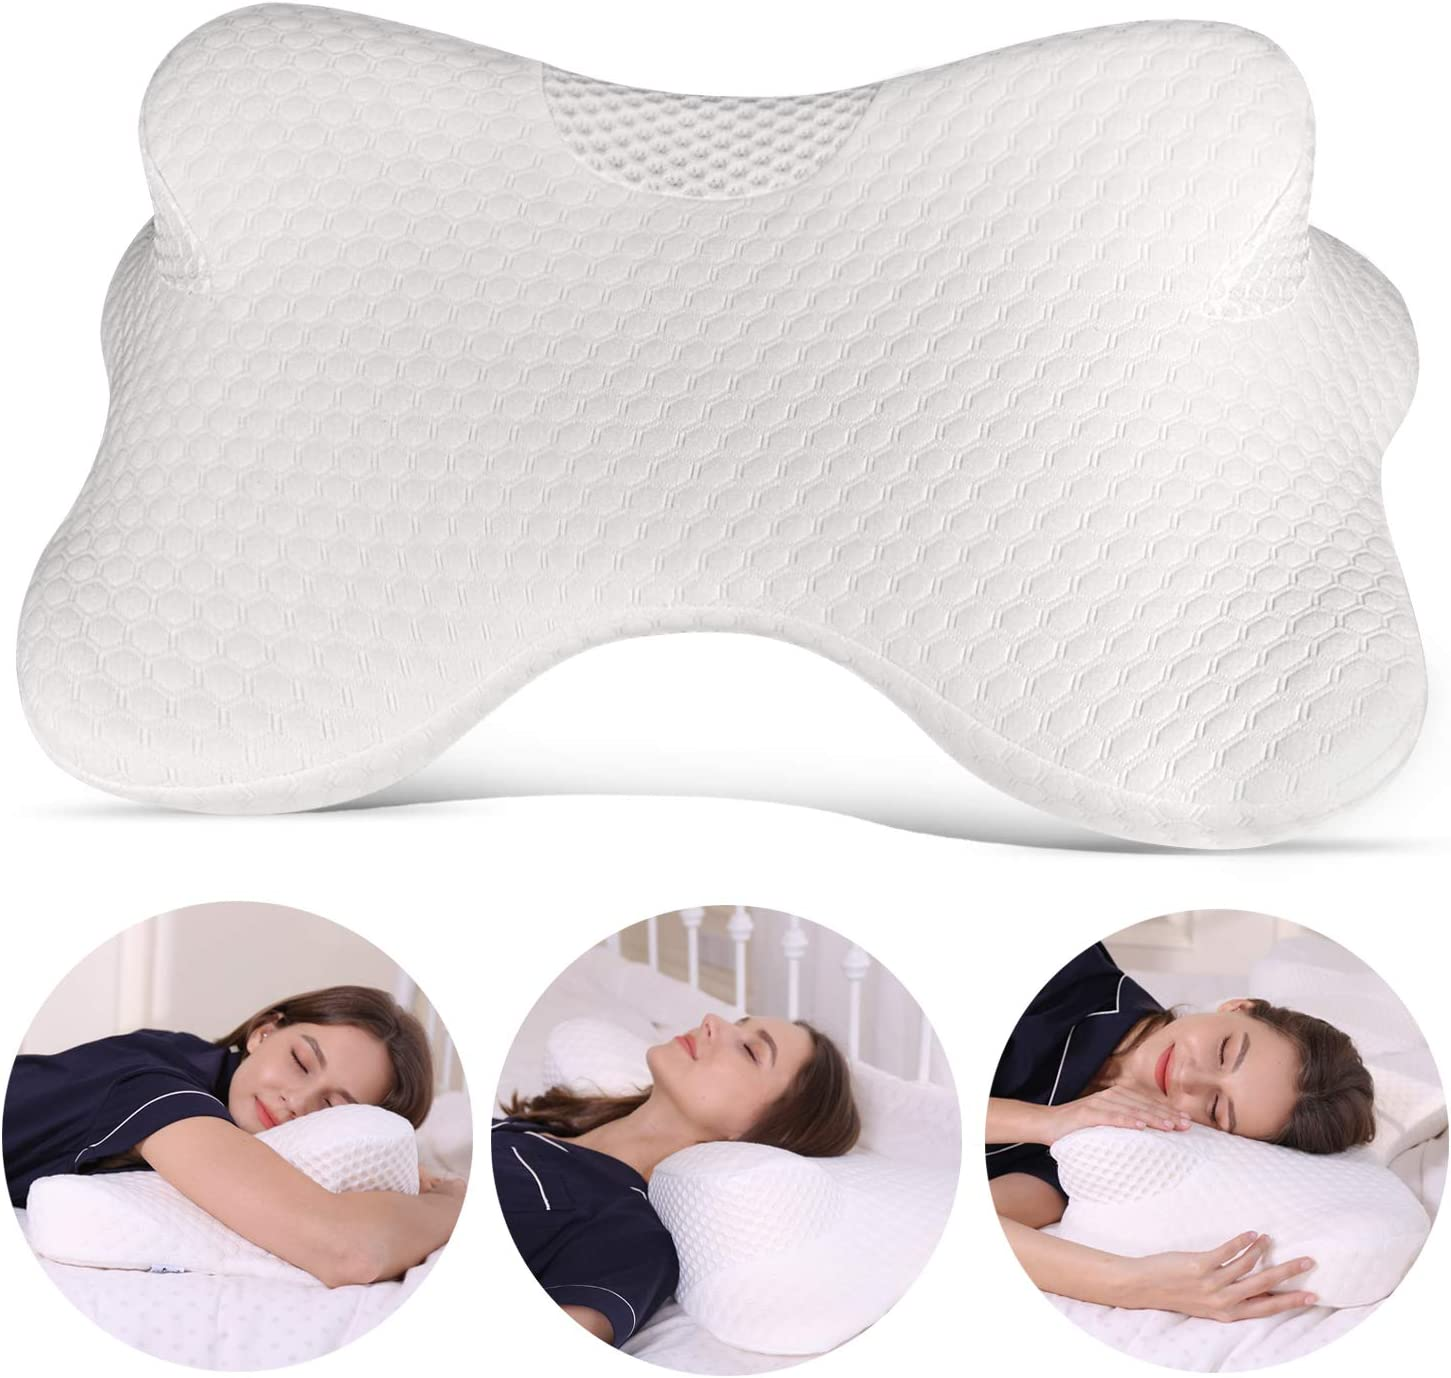 Amazon.com: Coisum Stomach - Almohada cervical para dormir ...